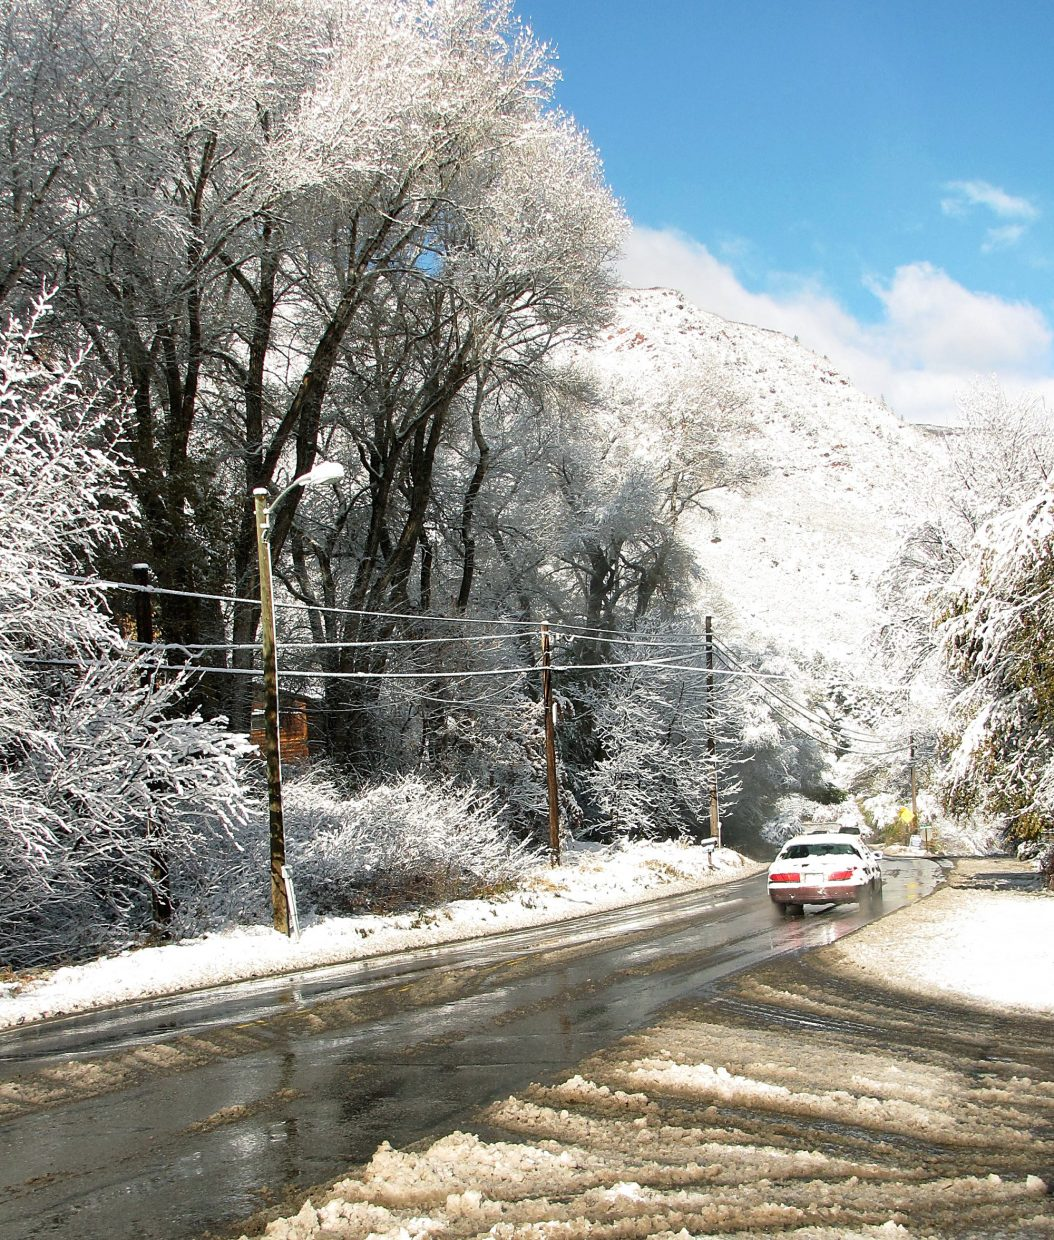 The snow overnight left a beautiful mess Wednesday morning on Midland Avenue in South Glenwood Springs.